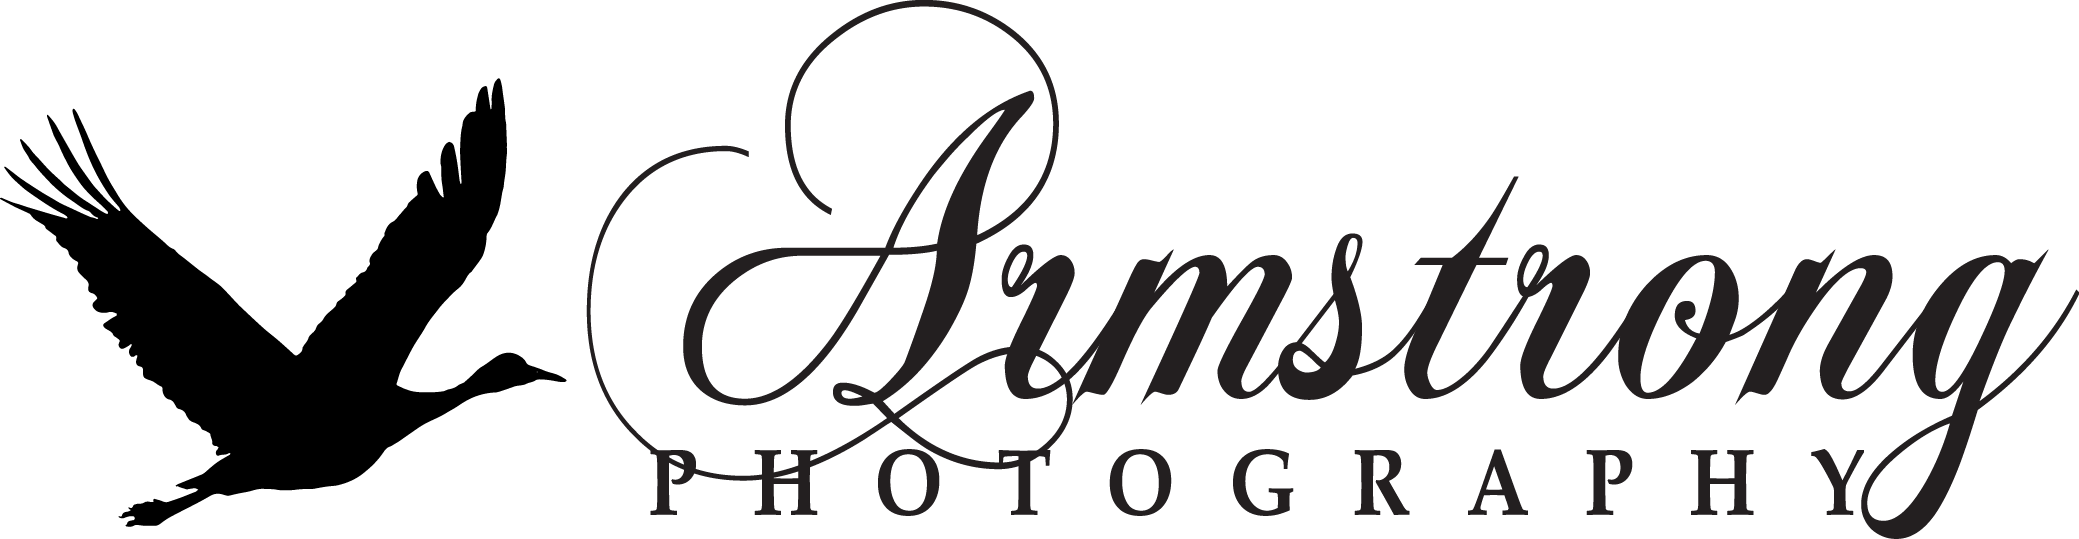 Armstrong Photography LLC